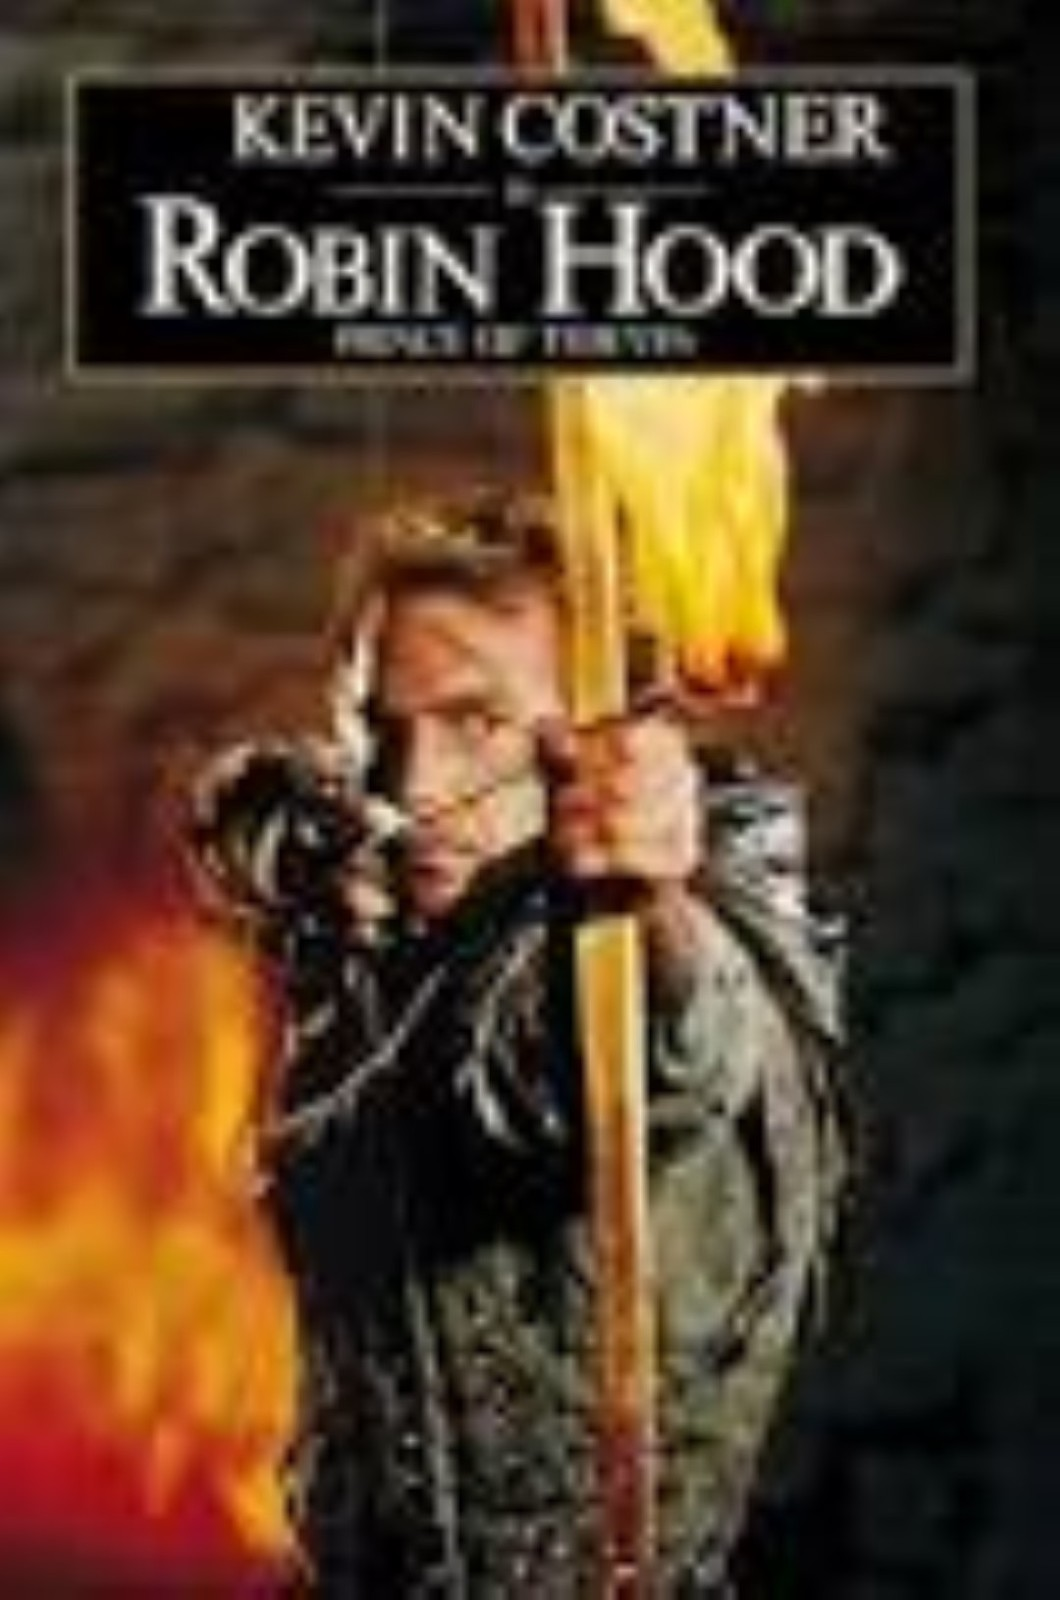 Robin Hood, Prince of Thieves Vhs